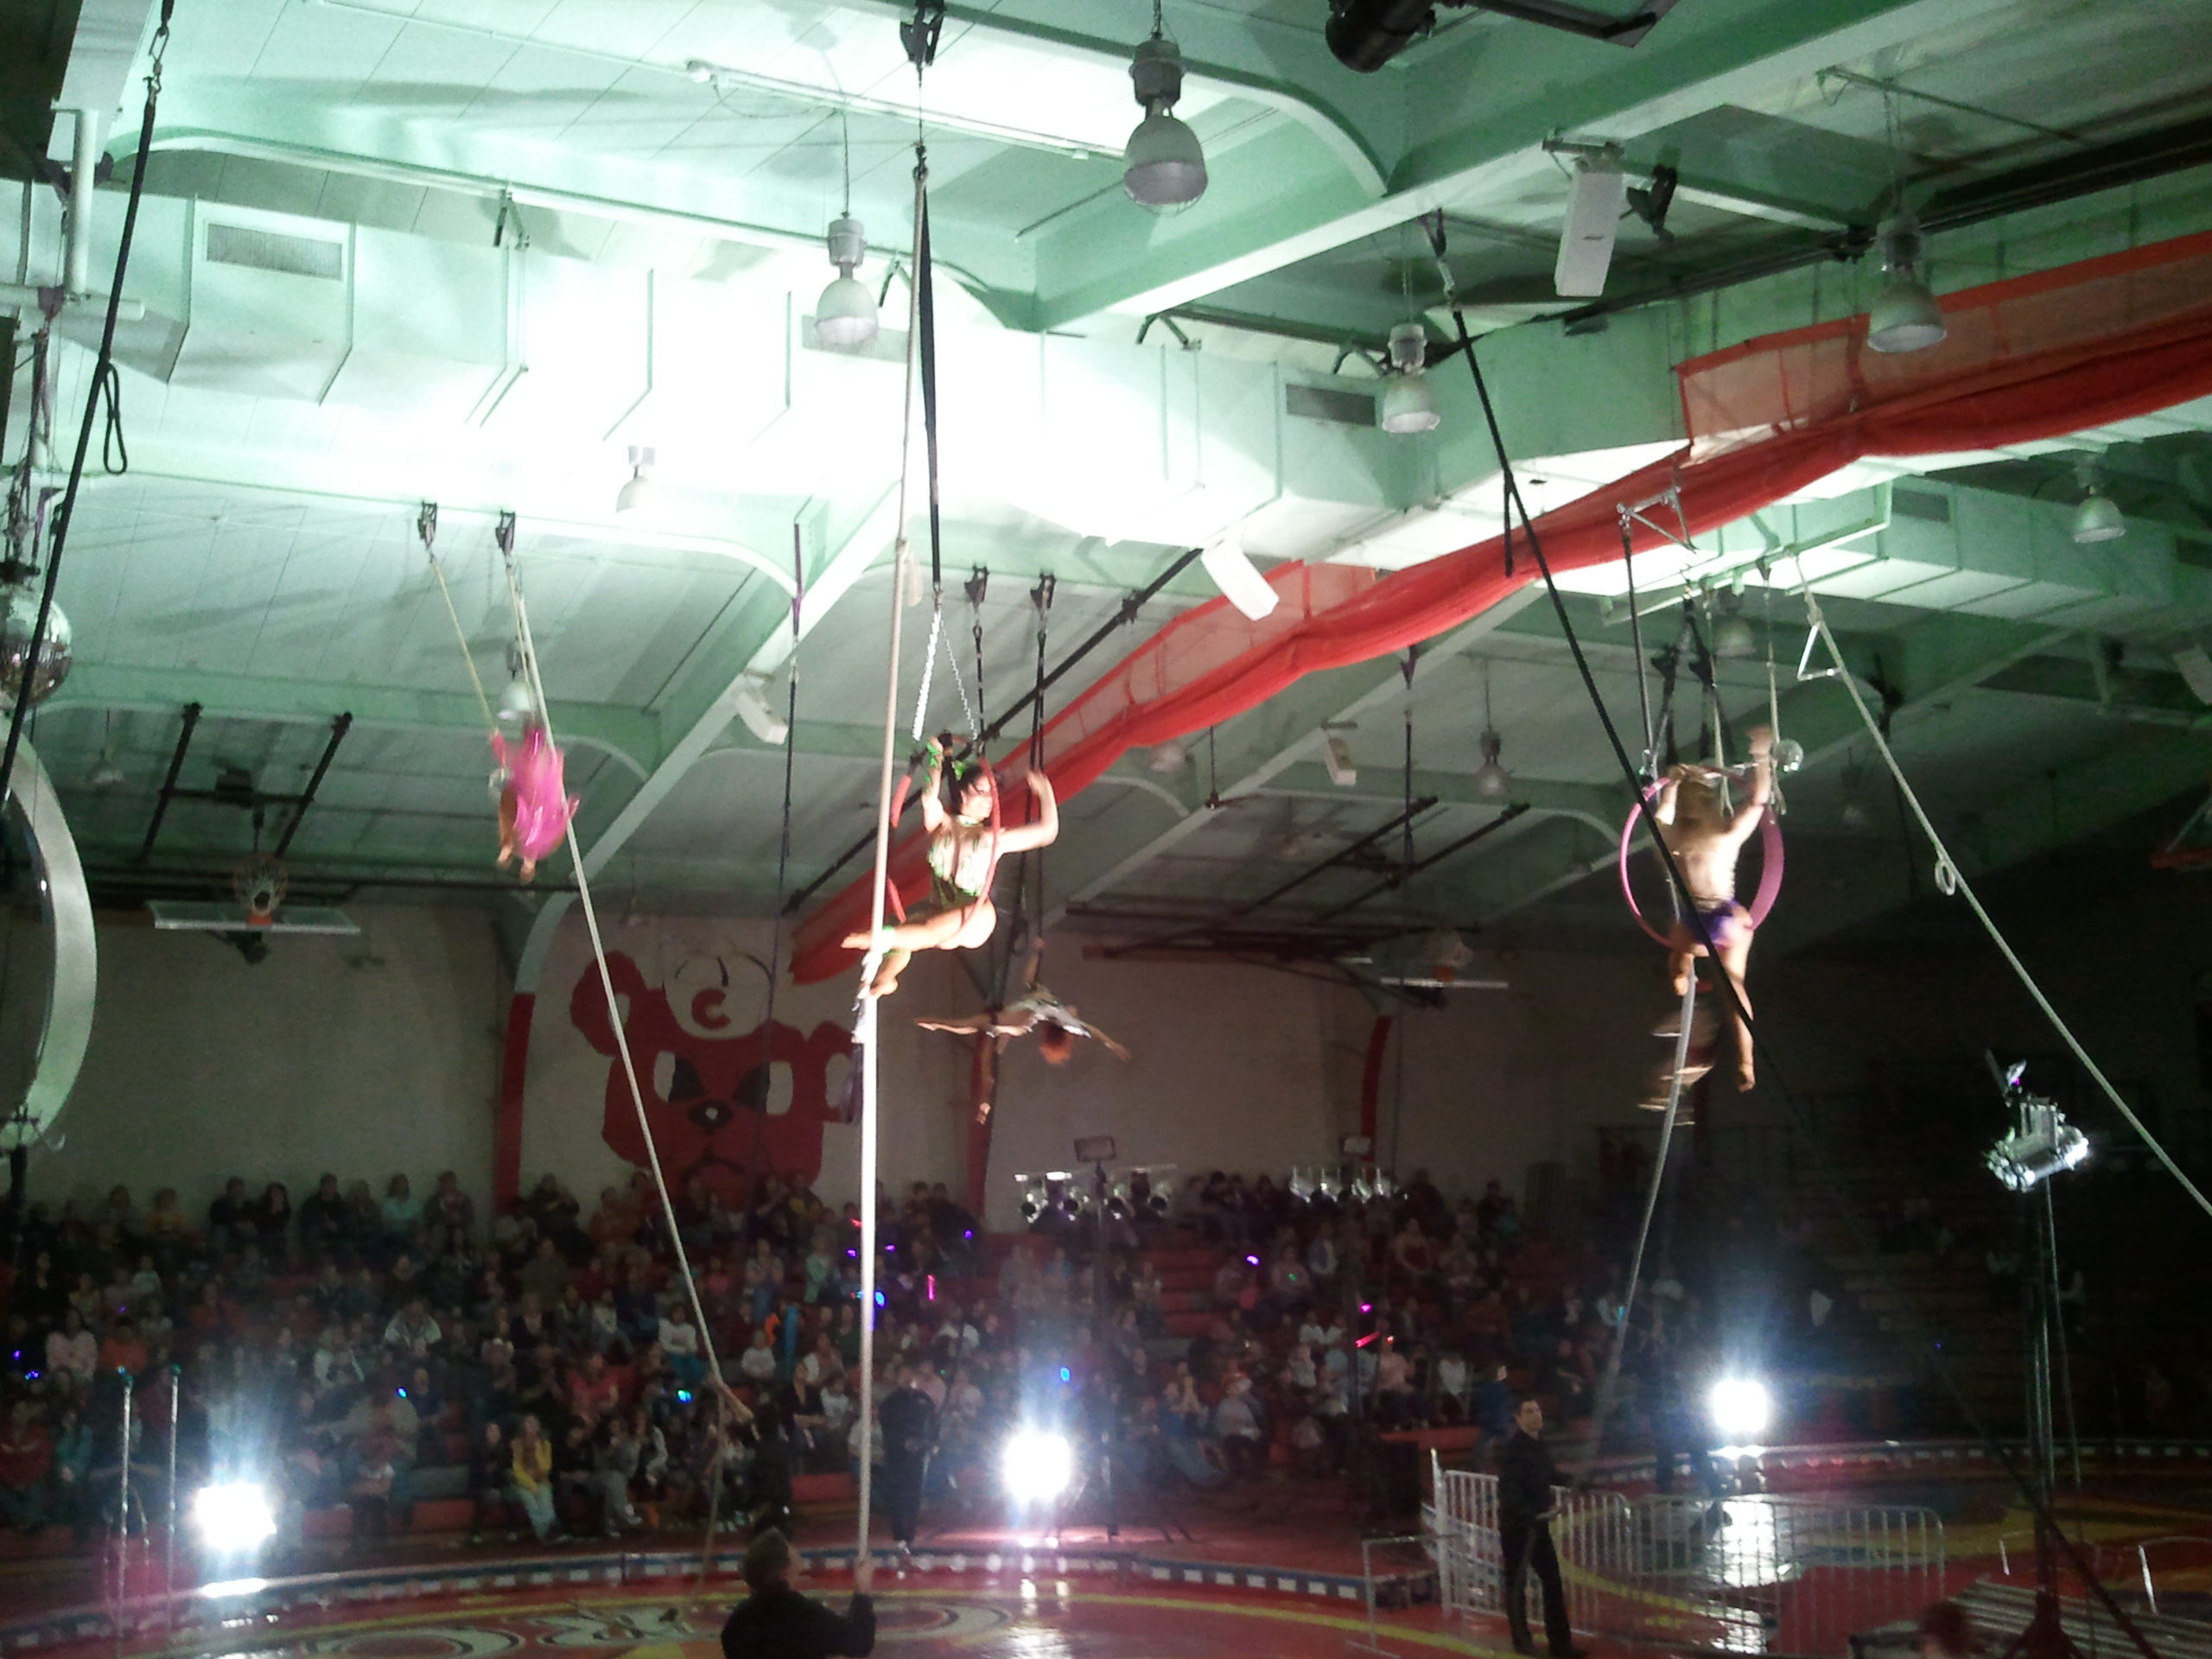 The students at St. Joseph's Indian School undoubtedly enjoyed the circus!